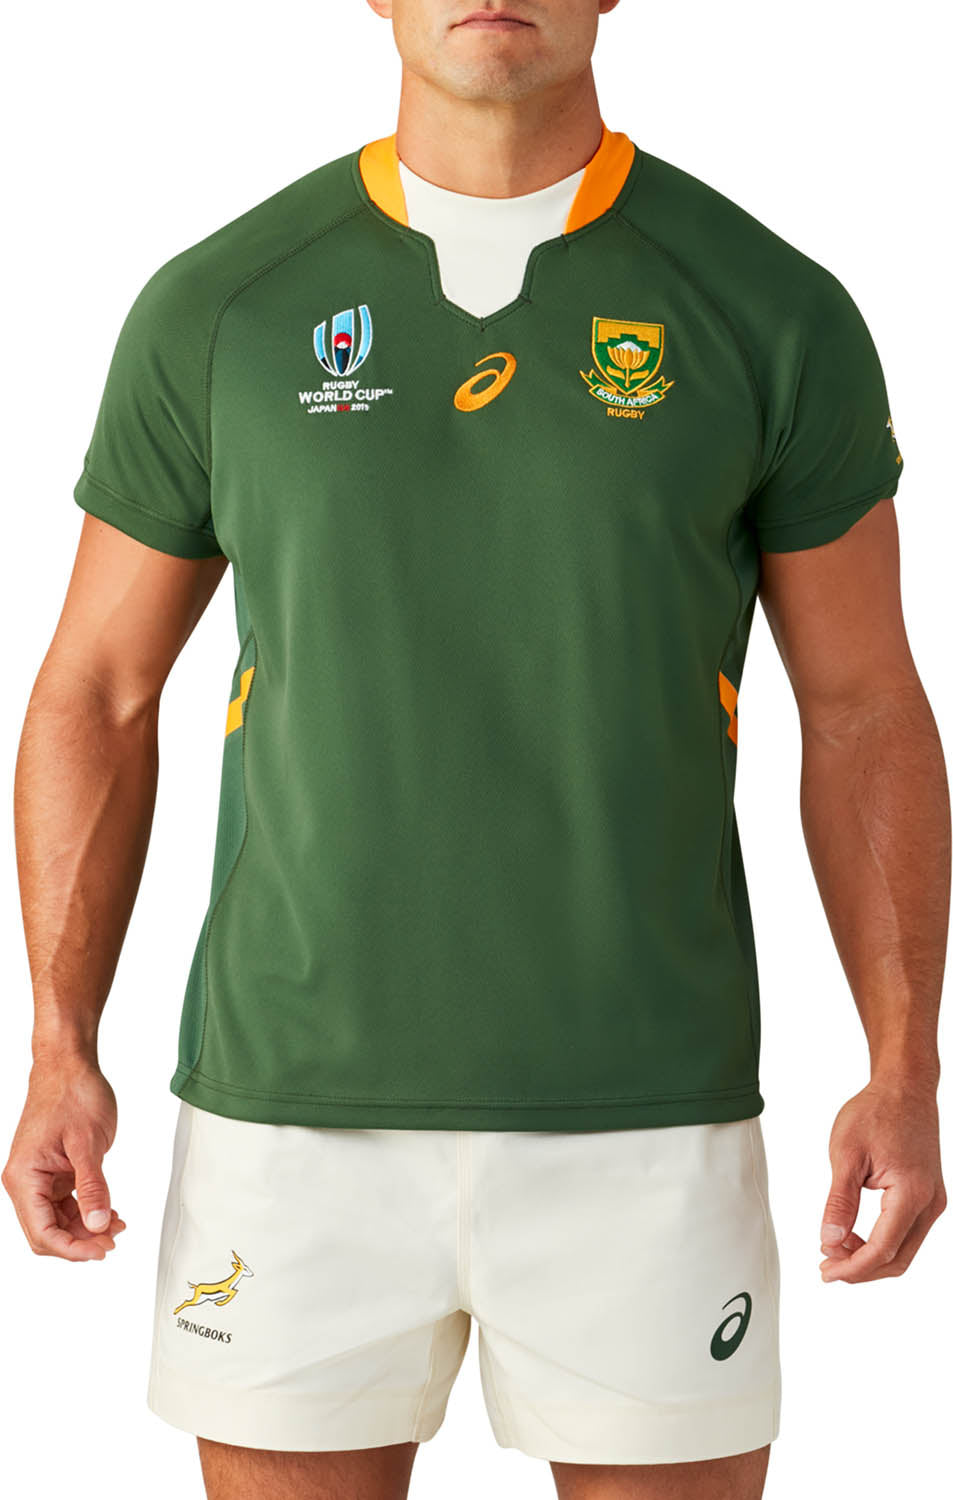 timeless design 4c7c4 2ea3b South Africa Rugby World Cup 2019 Home Pro Jersey – Official ...